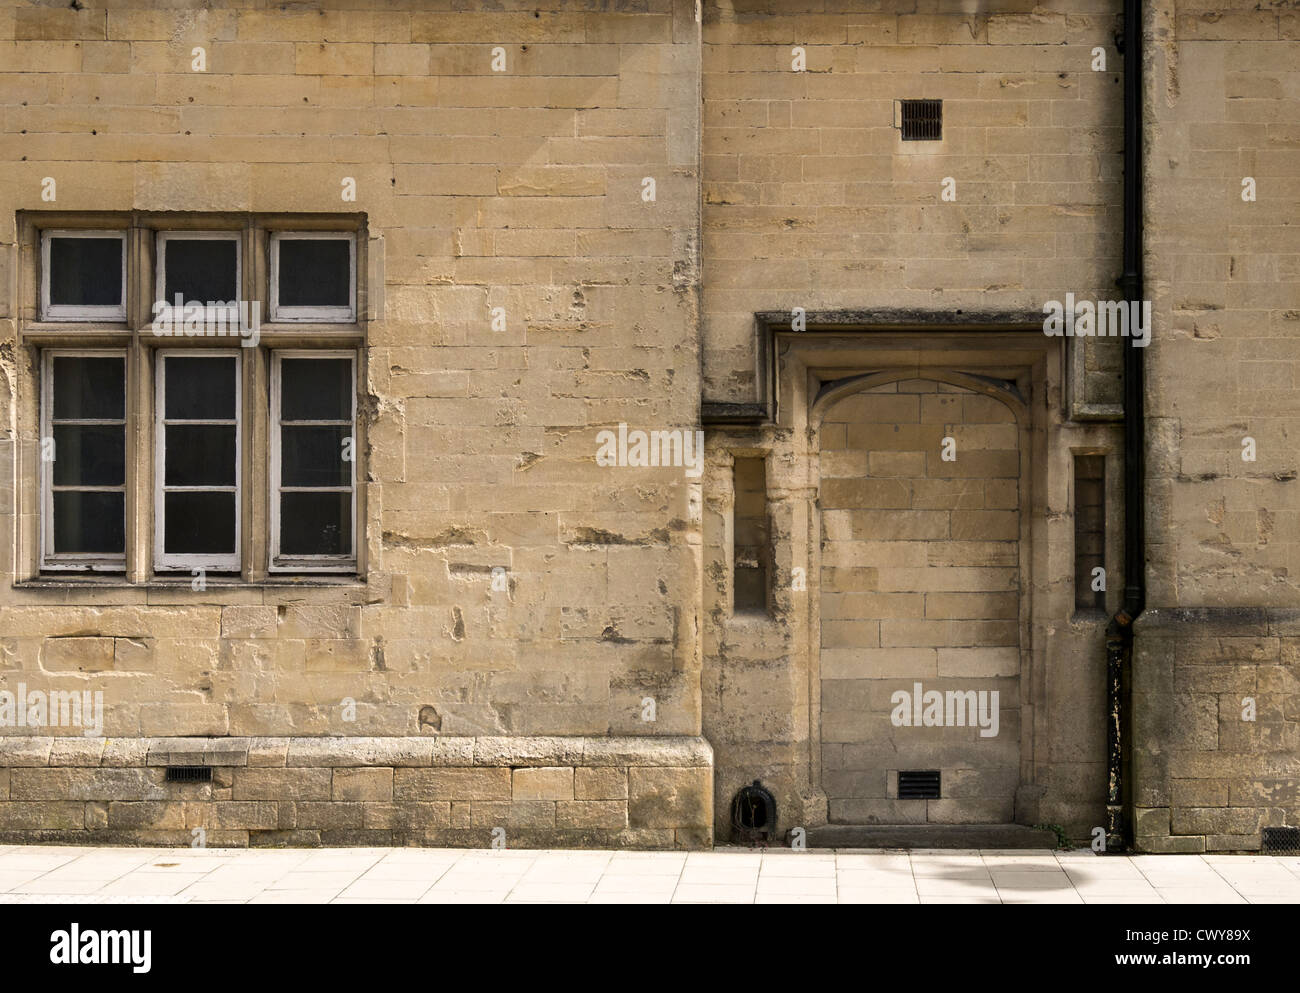 A bricked-up doorway in Jurassic limestone at Devizes, Wiltshire - Stock Image